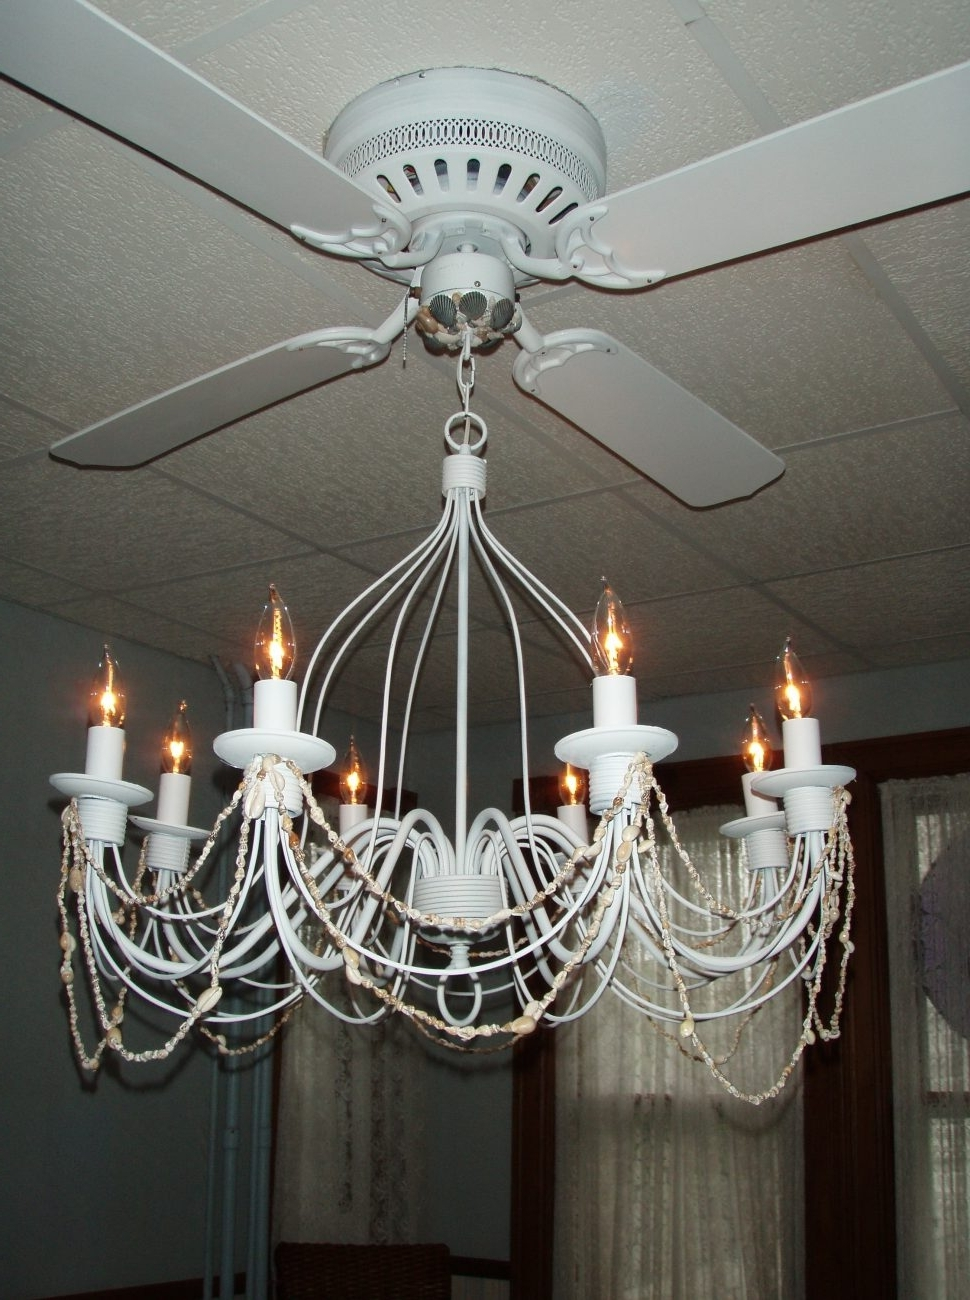 Chandelier Light Fixture For Ceiling Fan Pertaining To Favorite Ceiling Fans : Excellent Ceiling Fan Chandelier Elegant Fans With (View 7 of 20)